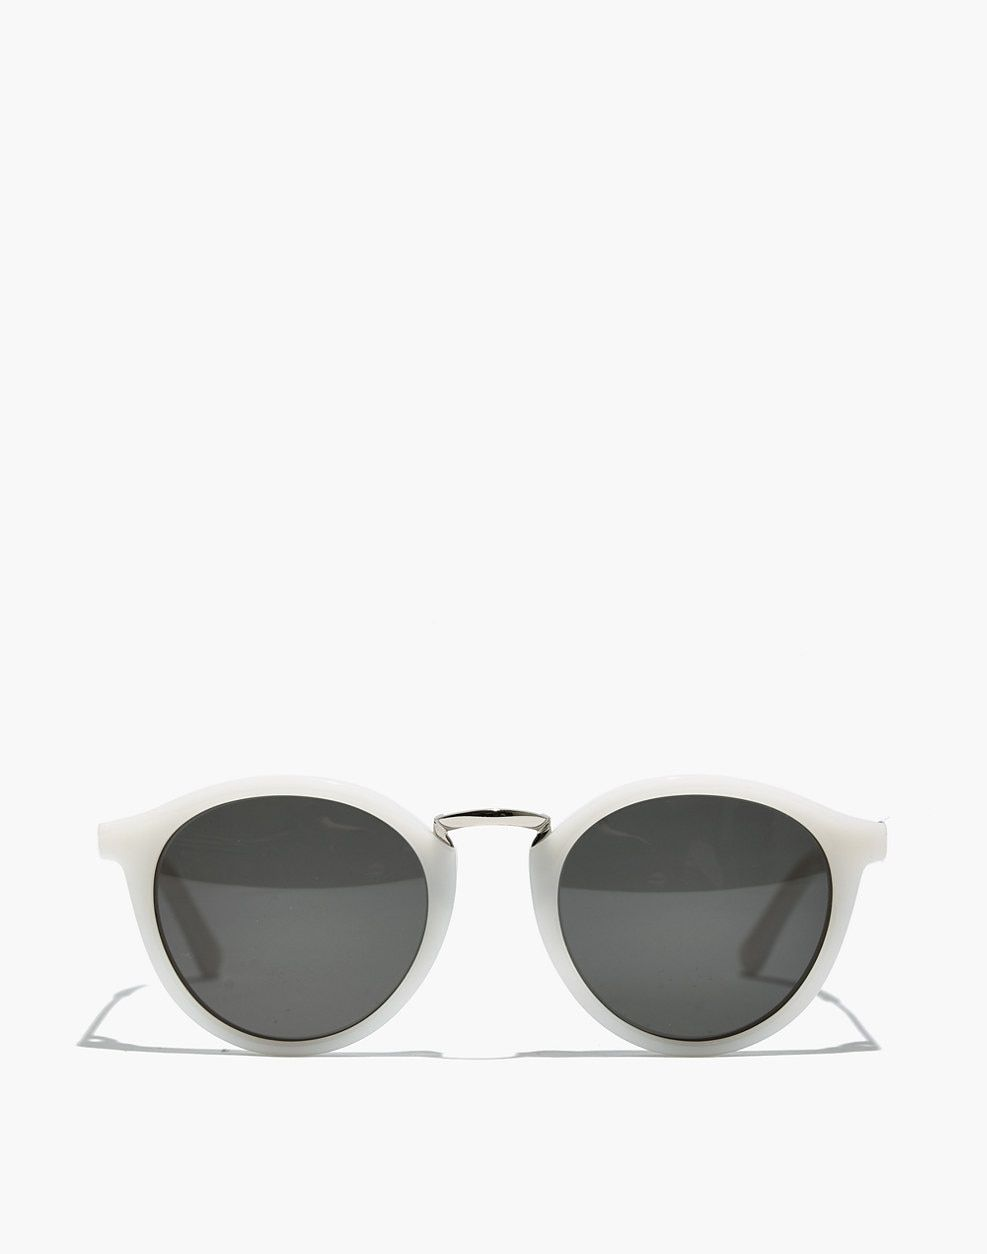 1ffdfaa9ae Indio Sunglasses   sunglasses